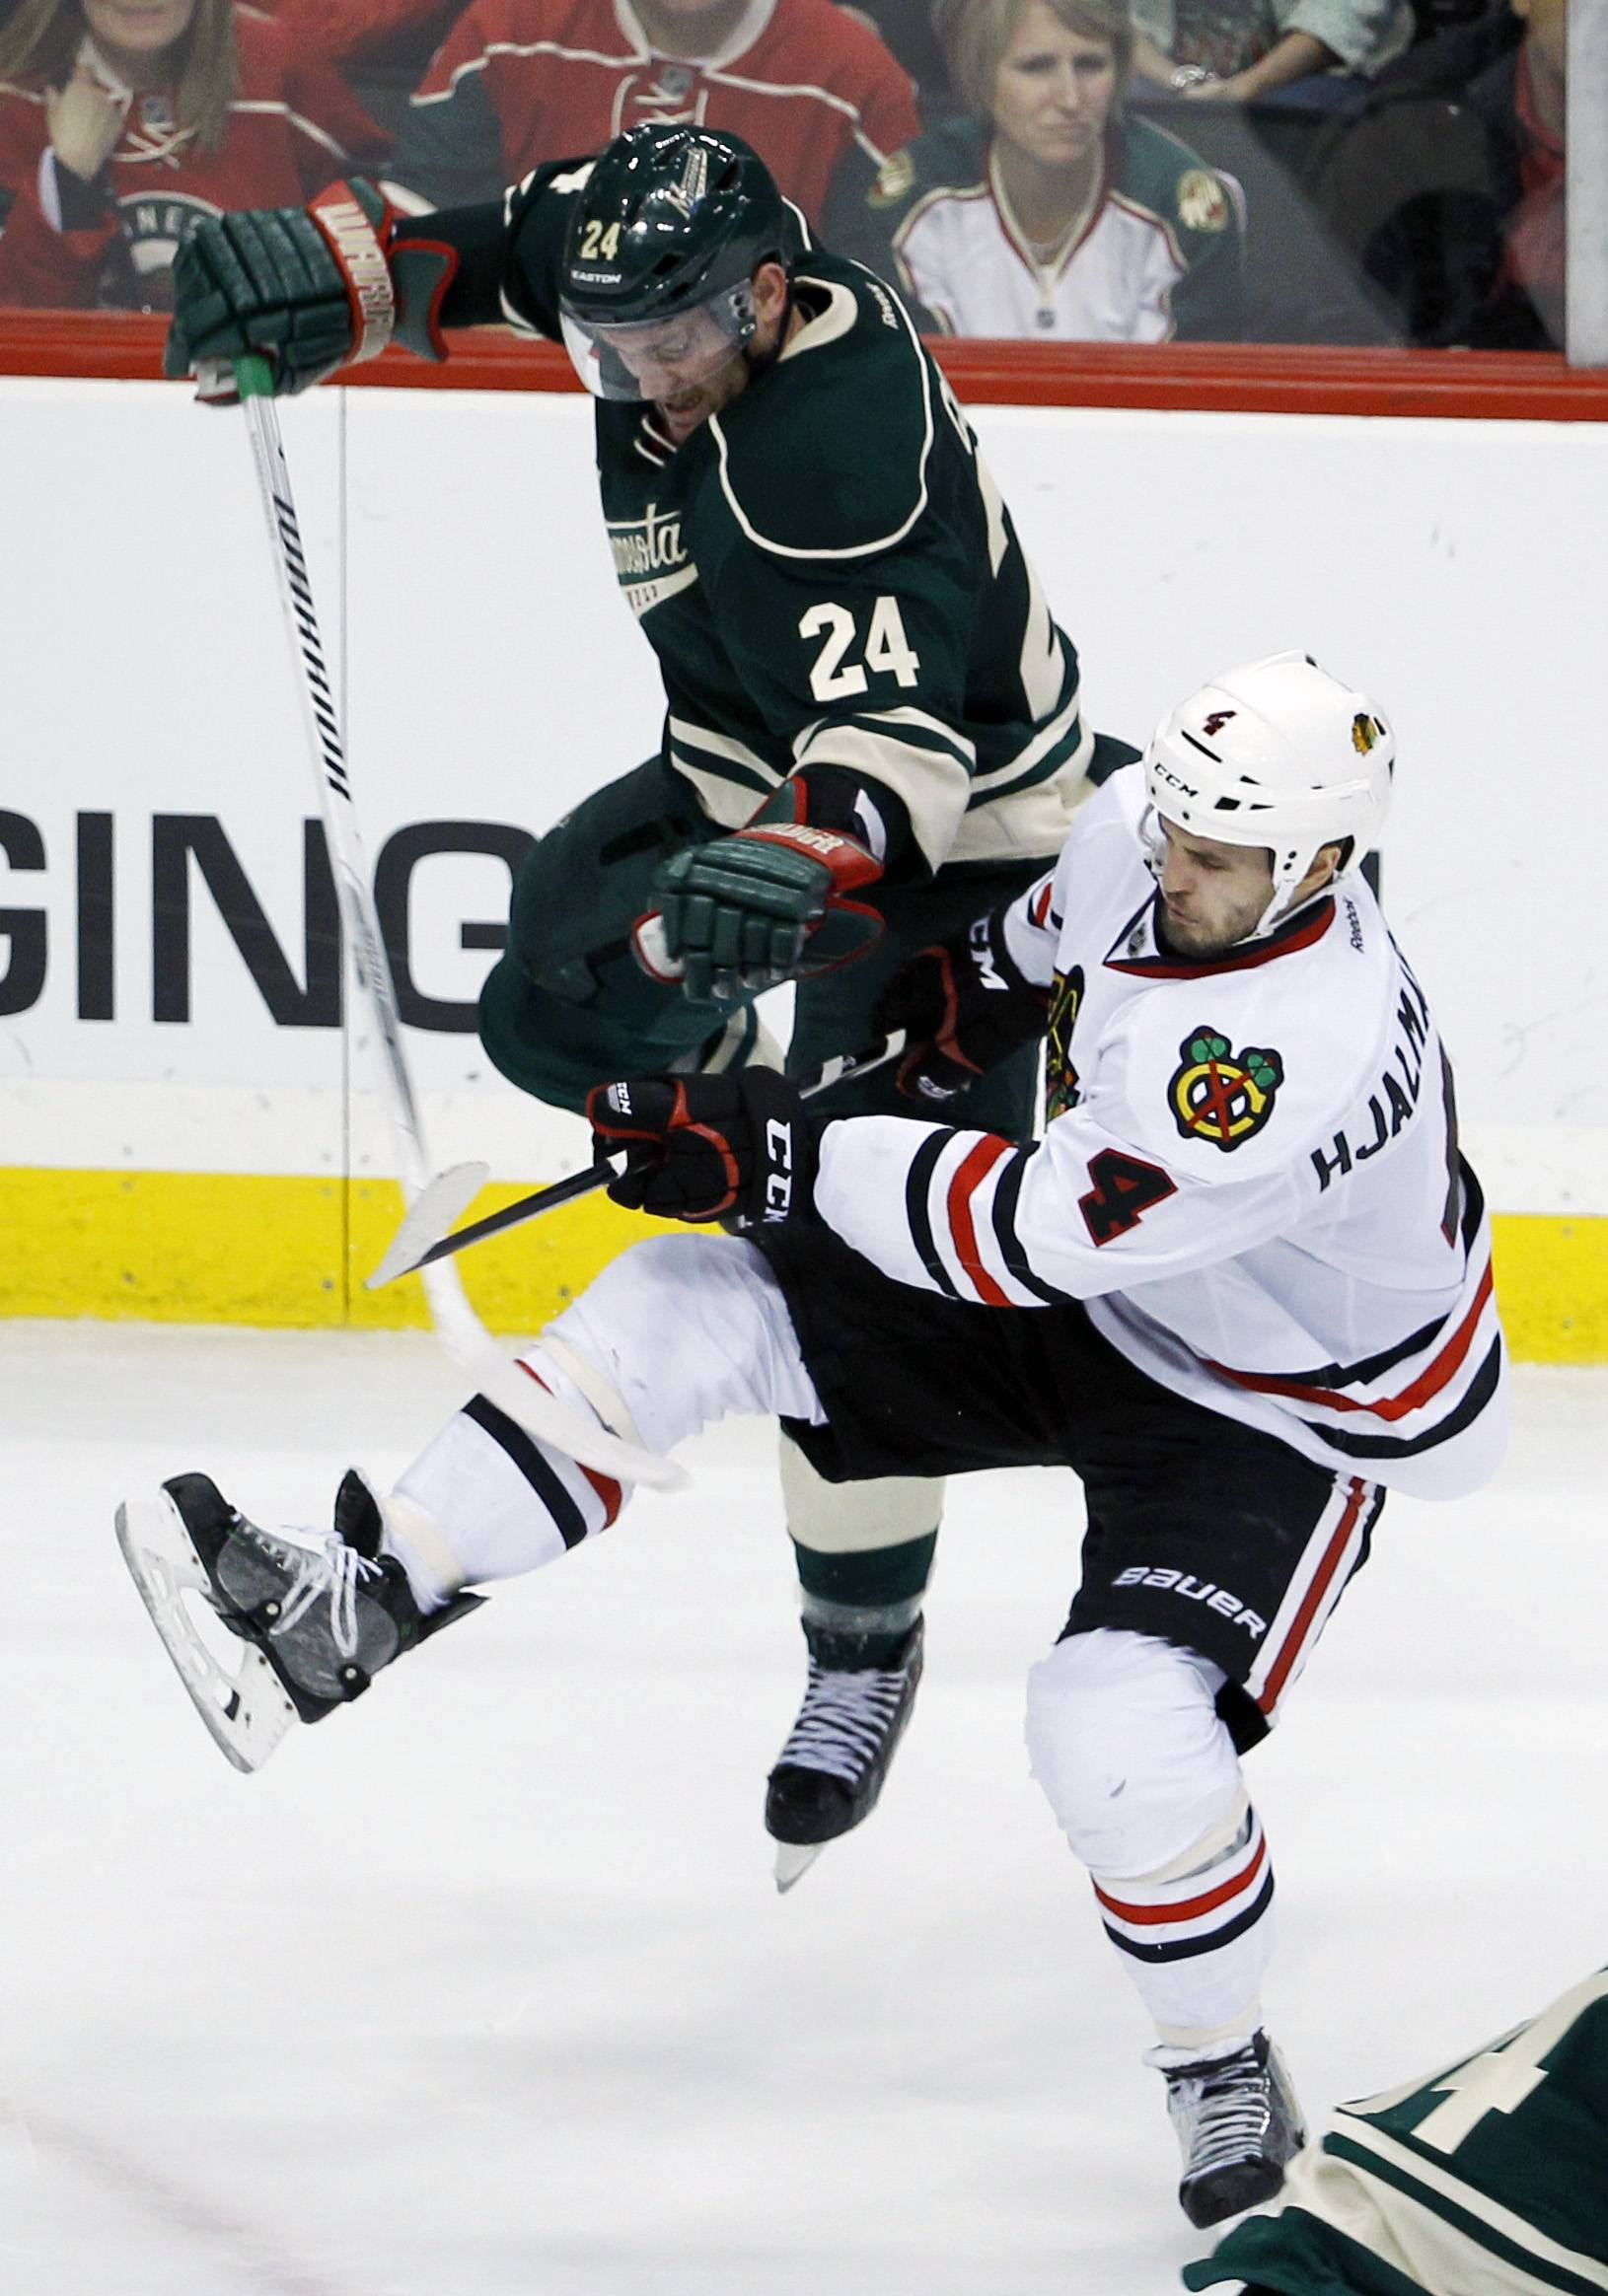 Minnesota Wild left wing Matt Cooke (24) and Chicago Blackhawks defenseman Niklas Hjalmarsson (4) collide during the third period of Game 4 of an NHL hockey second-round playoff series in St. Paul, Minn., Friday, May 9, 2014. The Wild won 4-2.